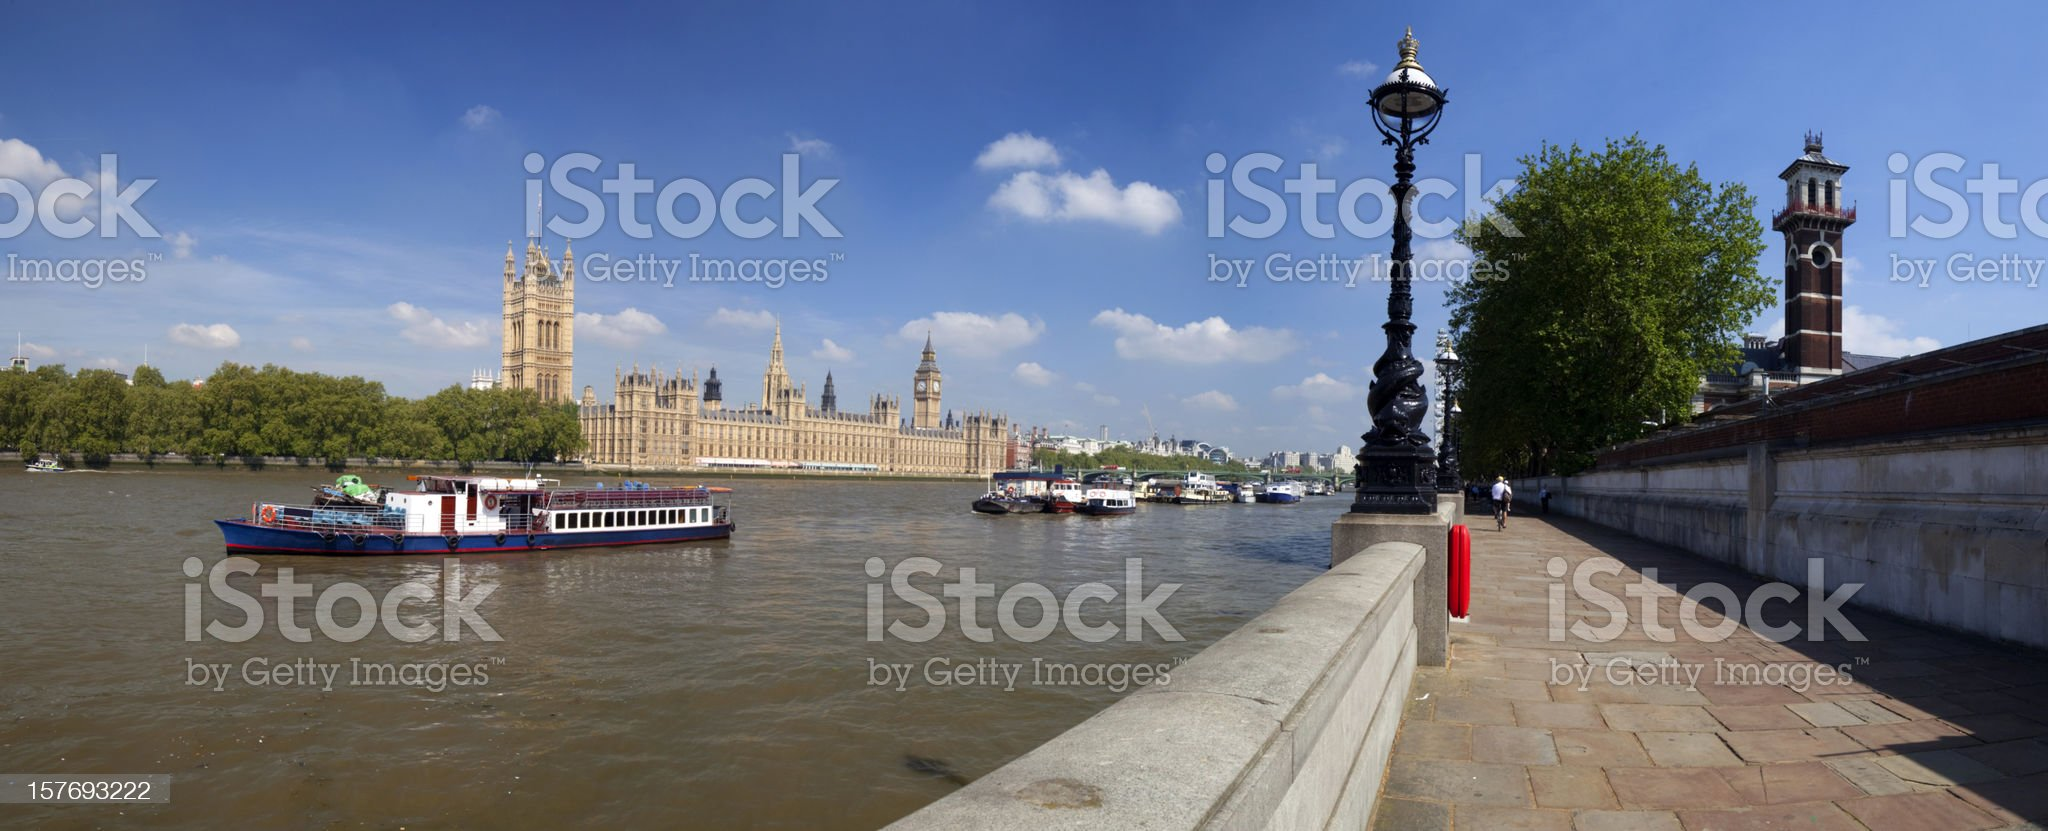 River Thames And The Houses Of Parliament royalty-free stock photo